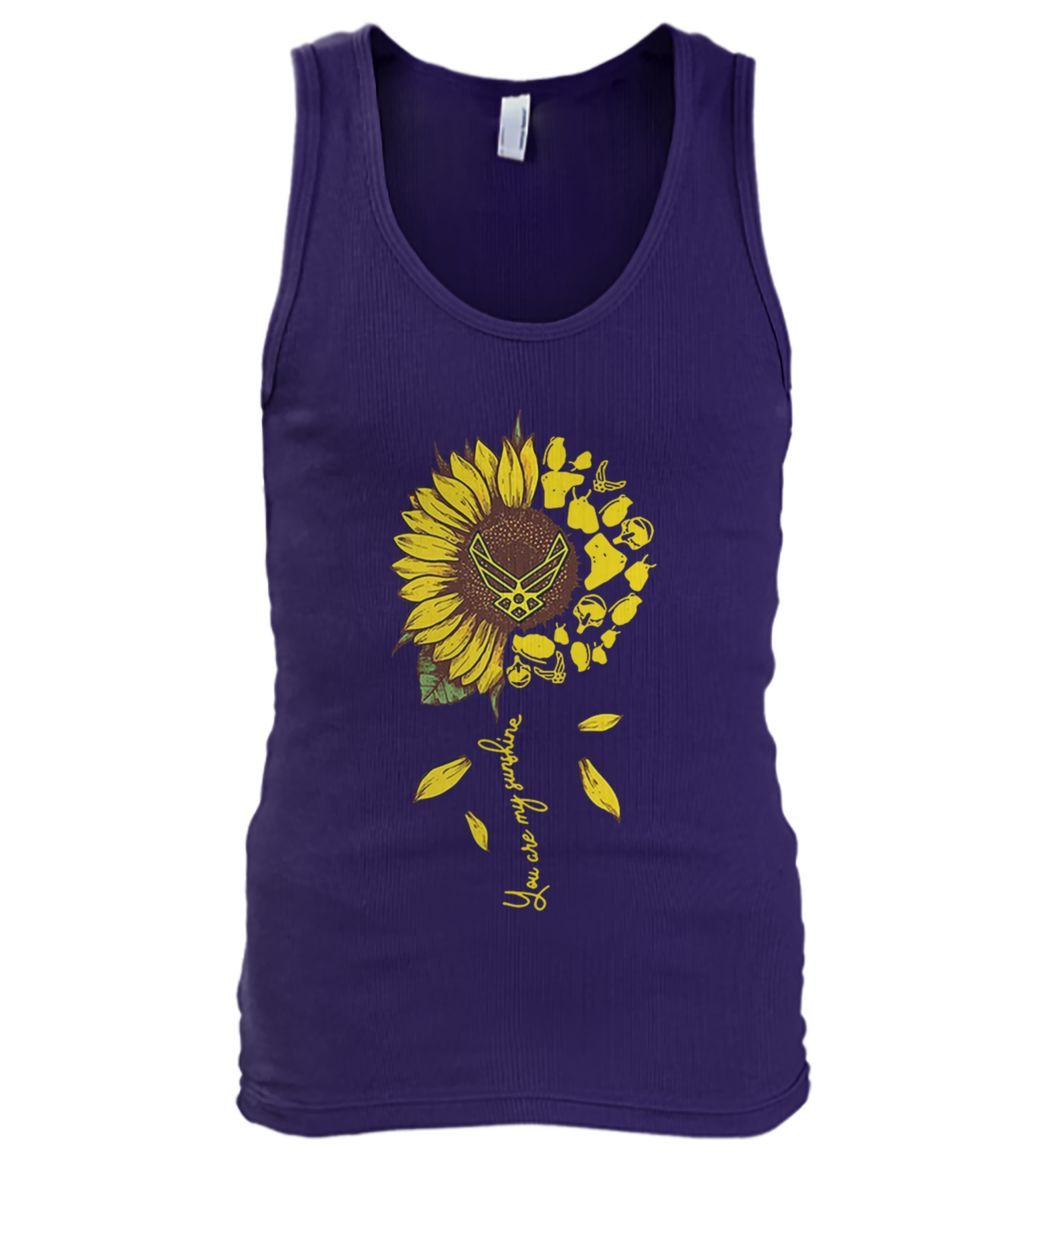 Sunflower you are my sunshine US air force men's tank top